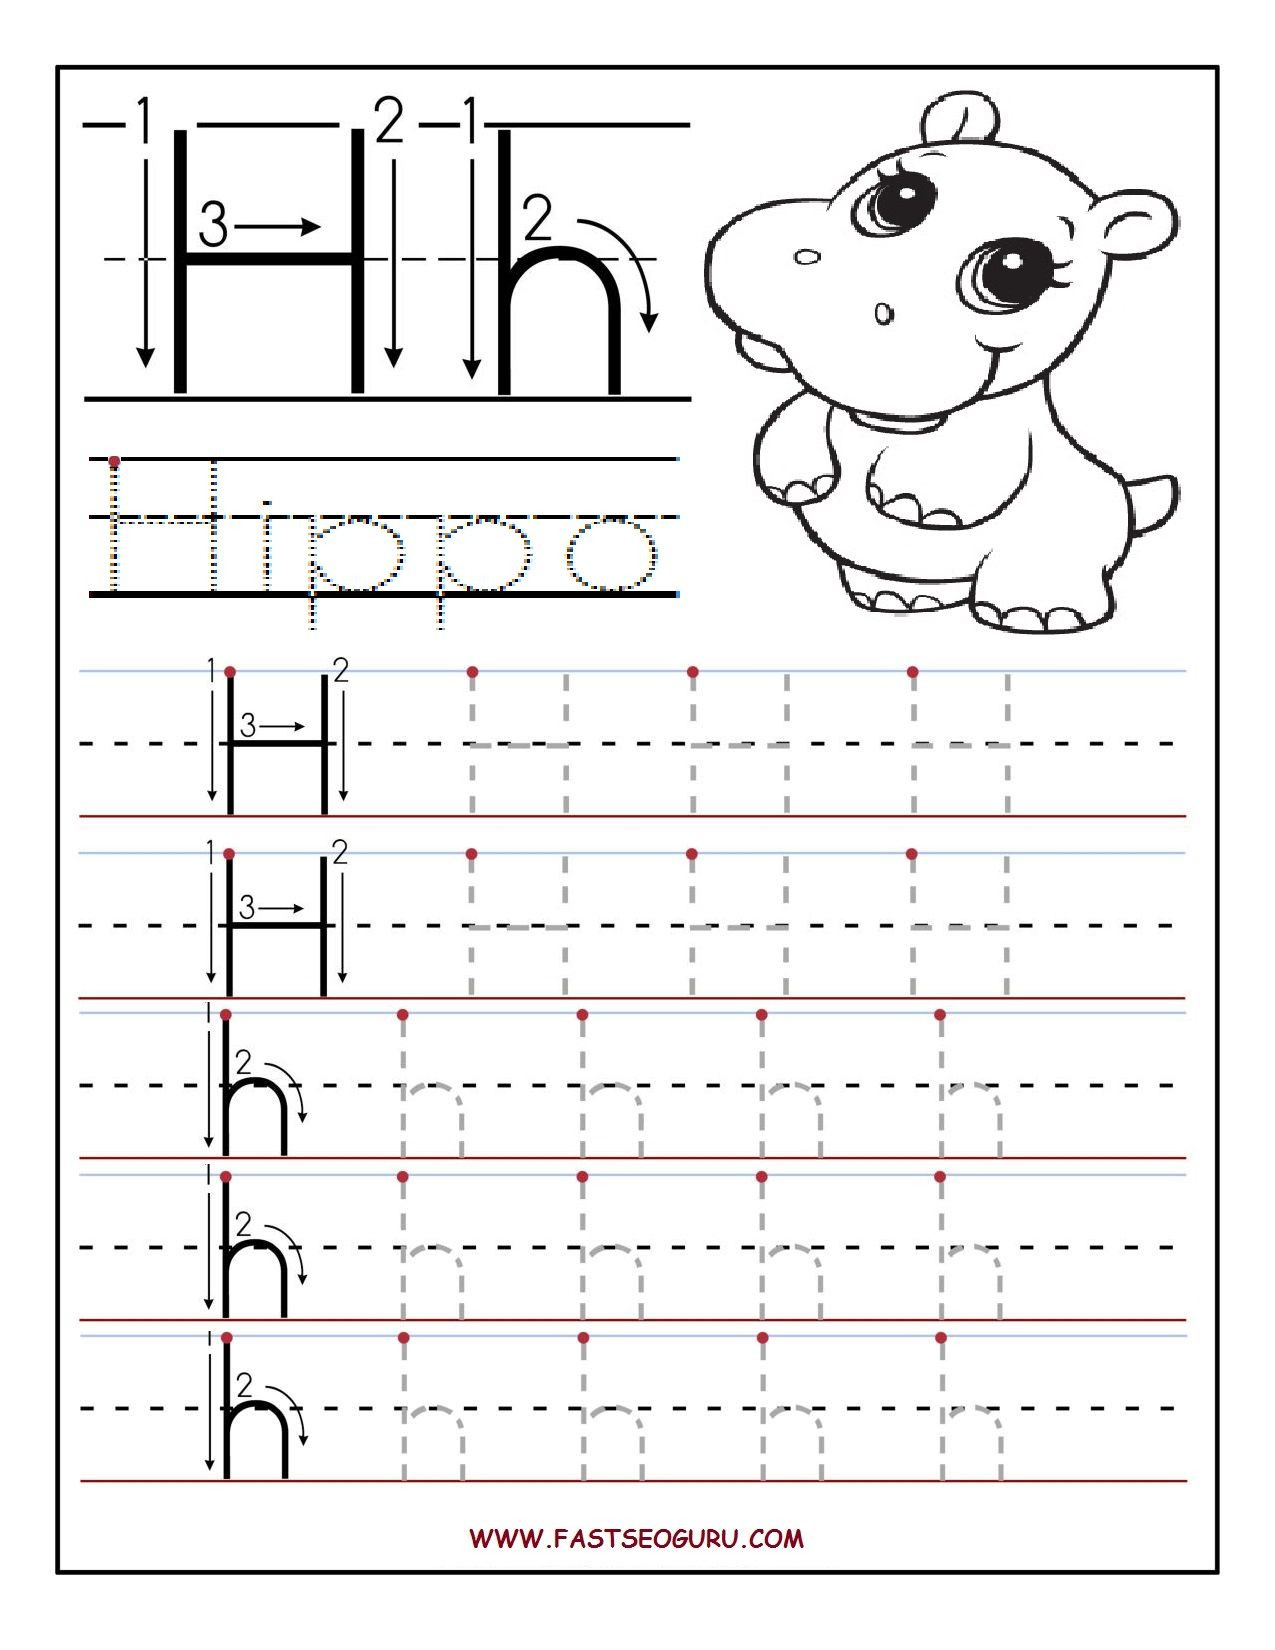 Preschool Letter H Worksheets Printable Letter H Tracing Worksheets for Preschool